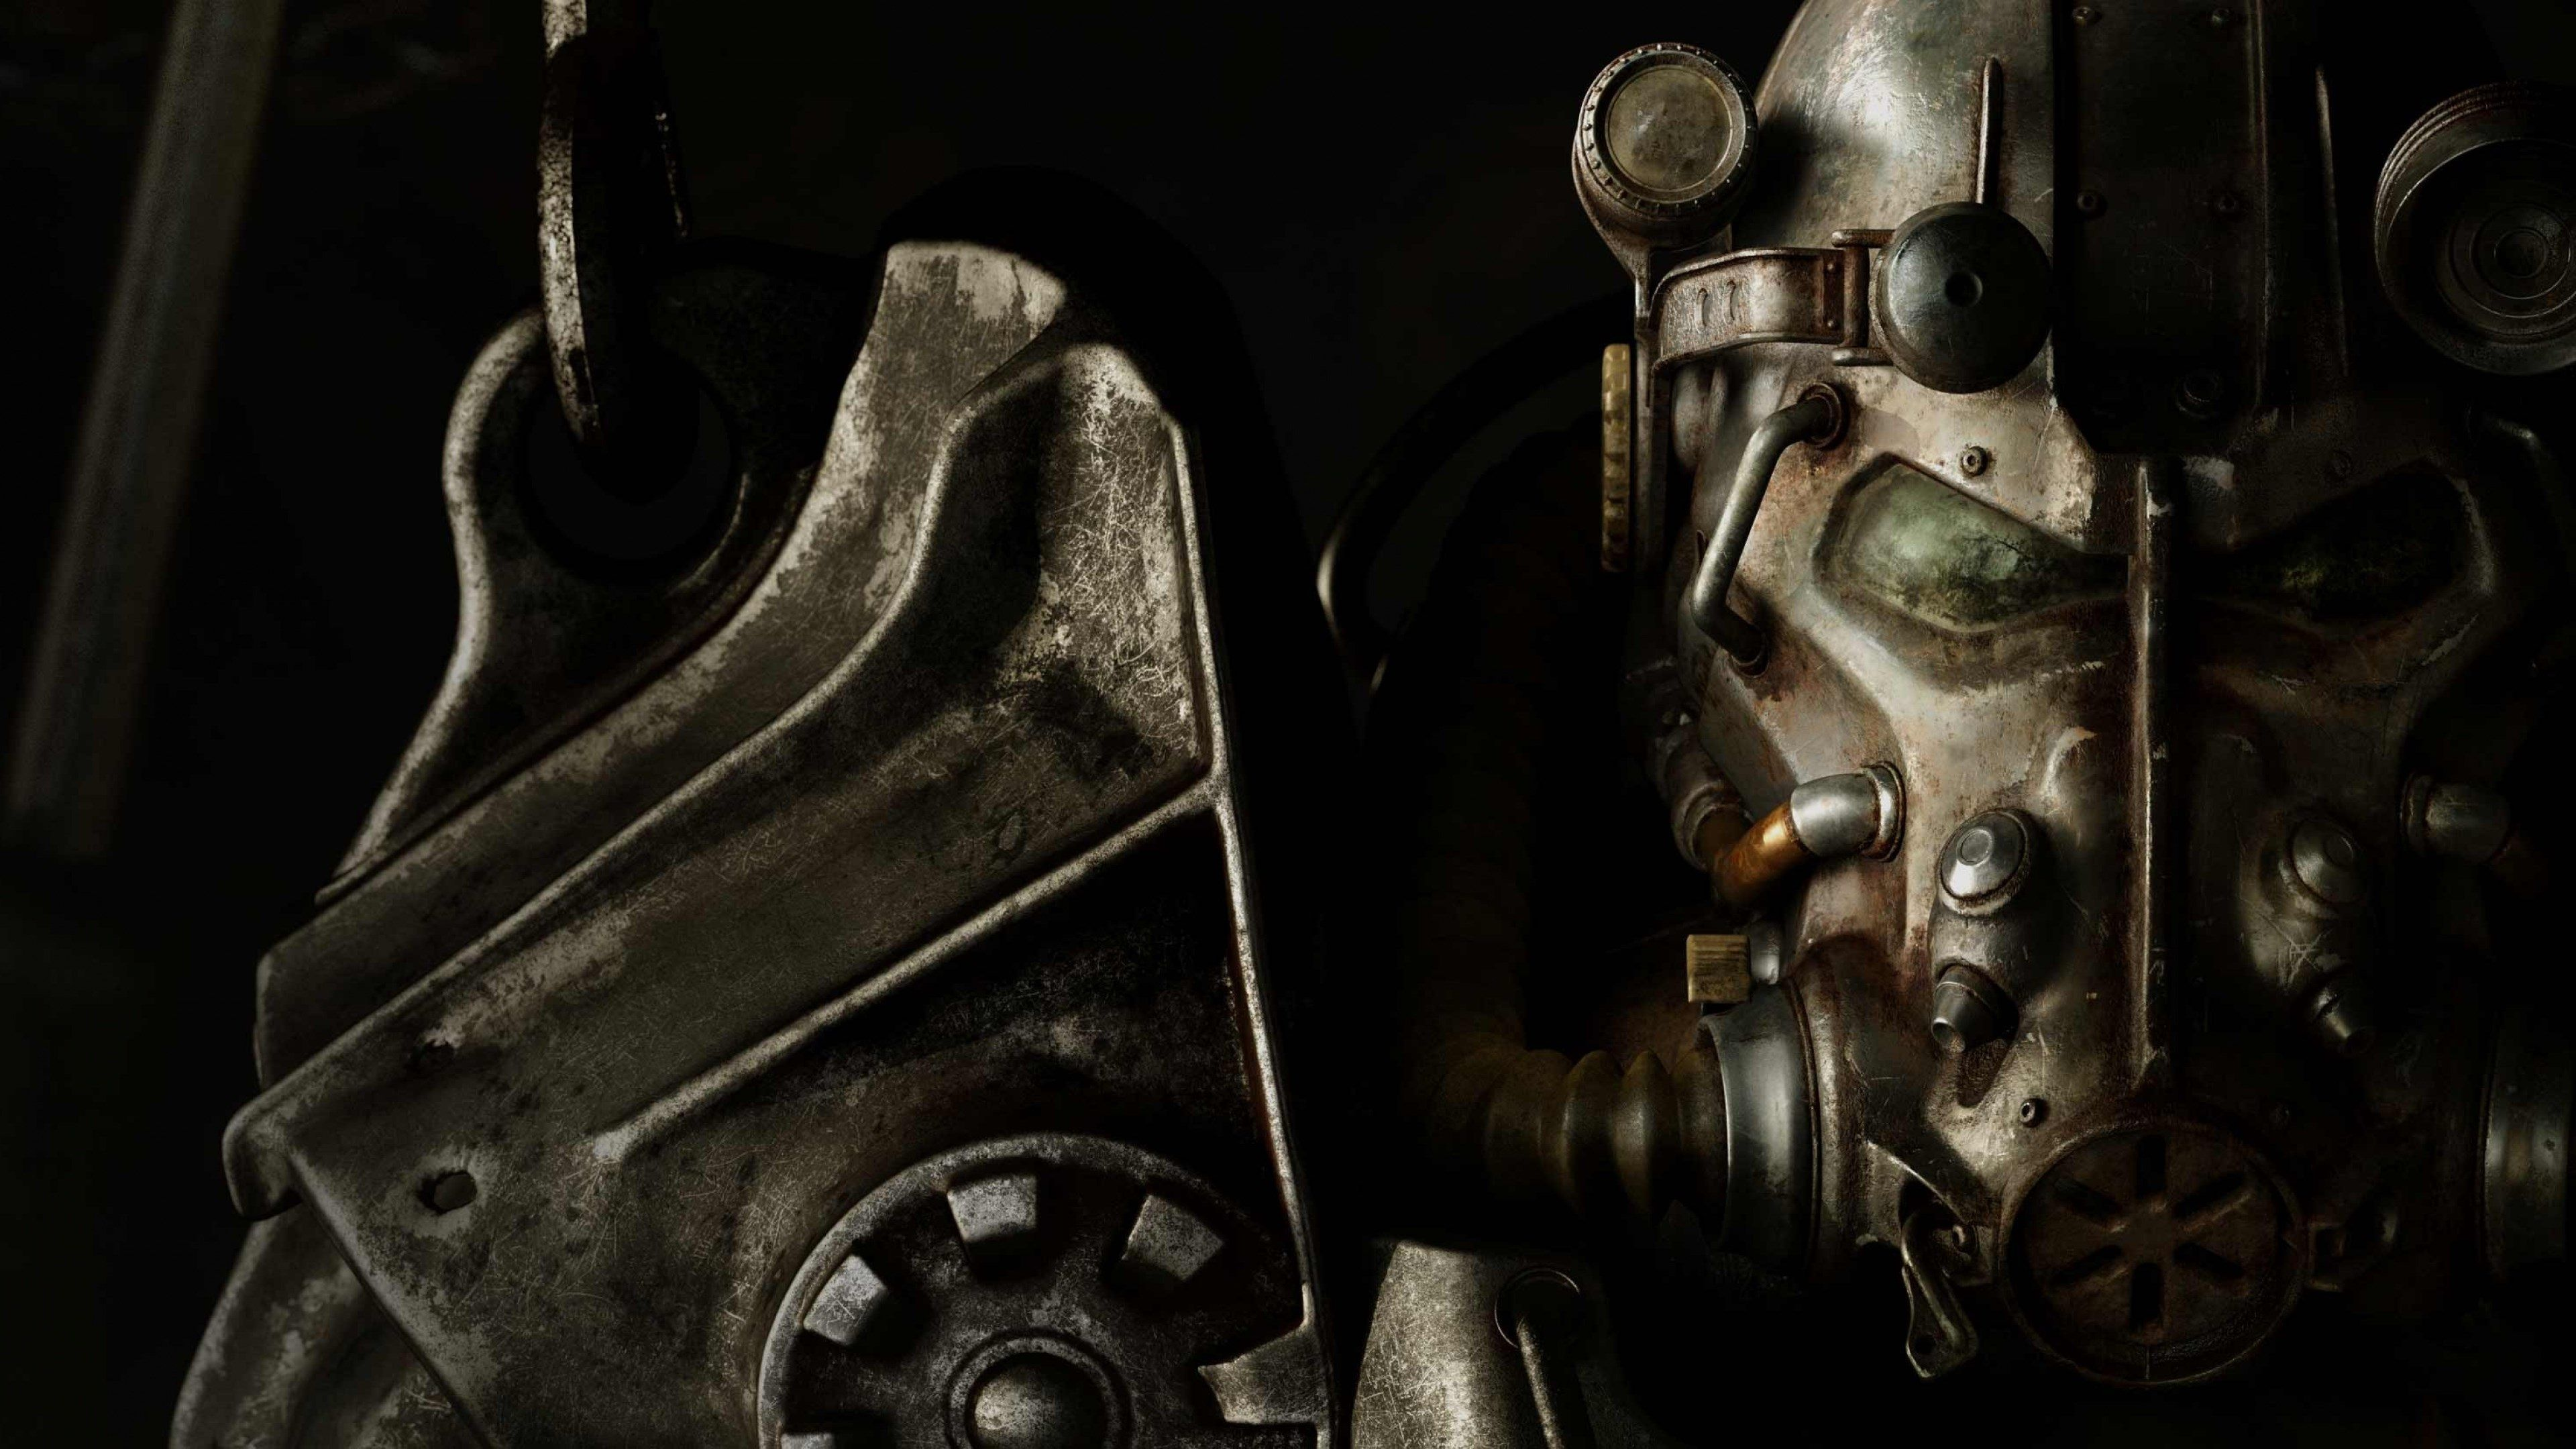 3840x2160 Fallout 4 4k Computer Backgrounds Wallpaper Fallout Wallpaper Power Armor Armor Games